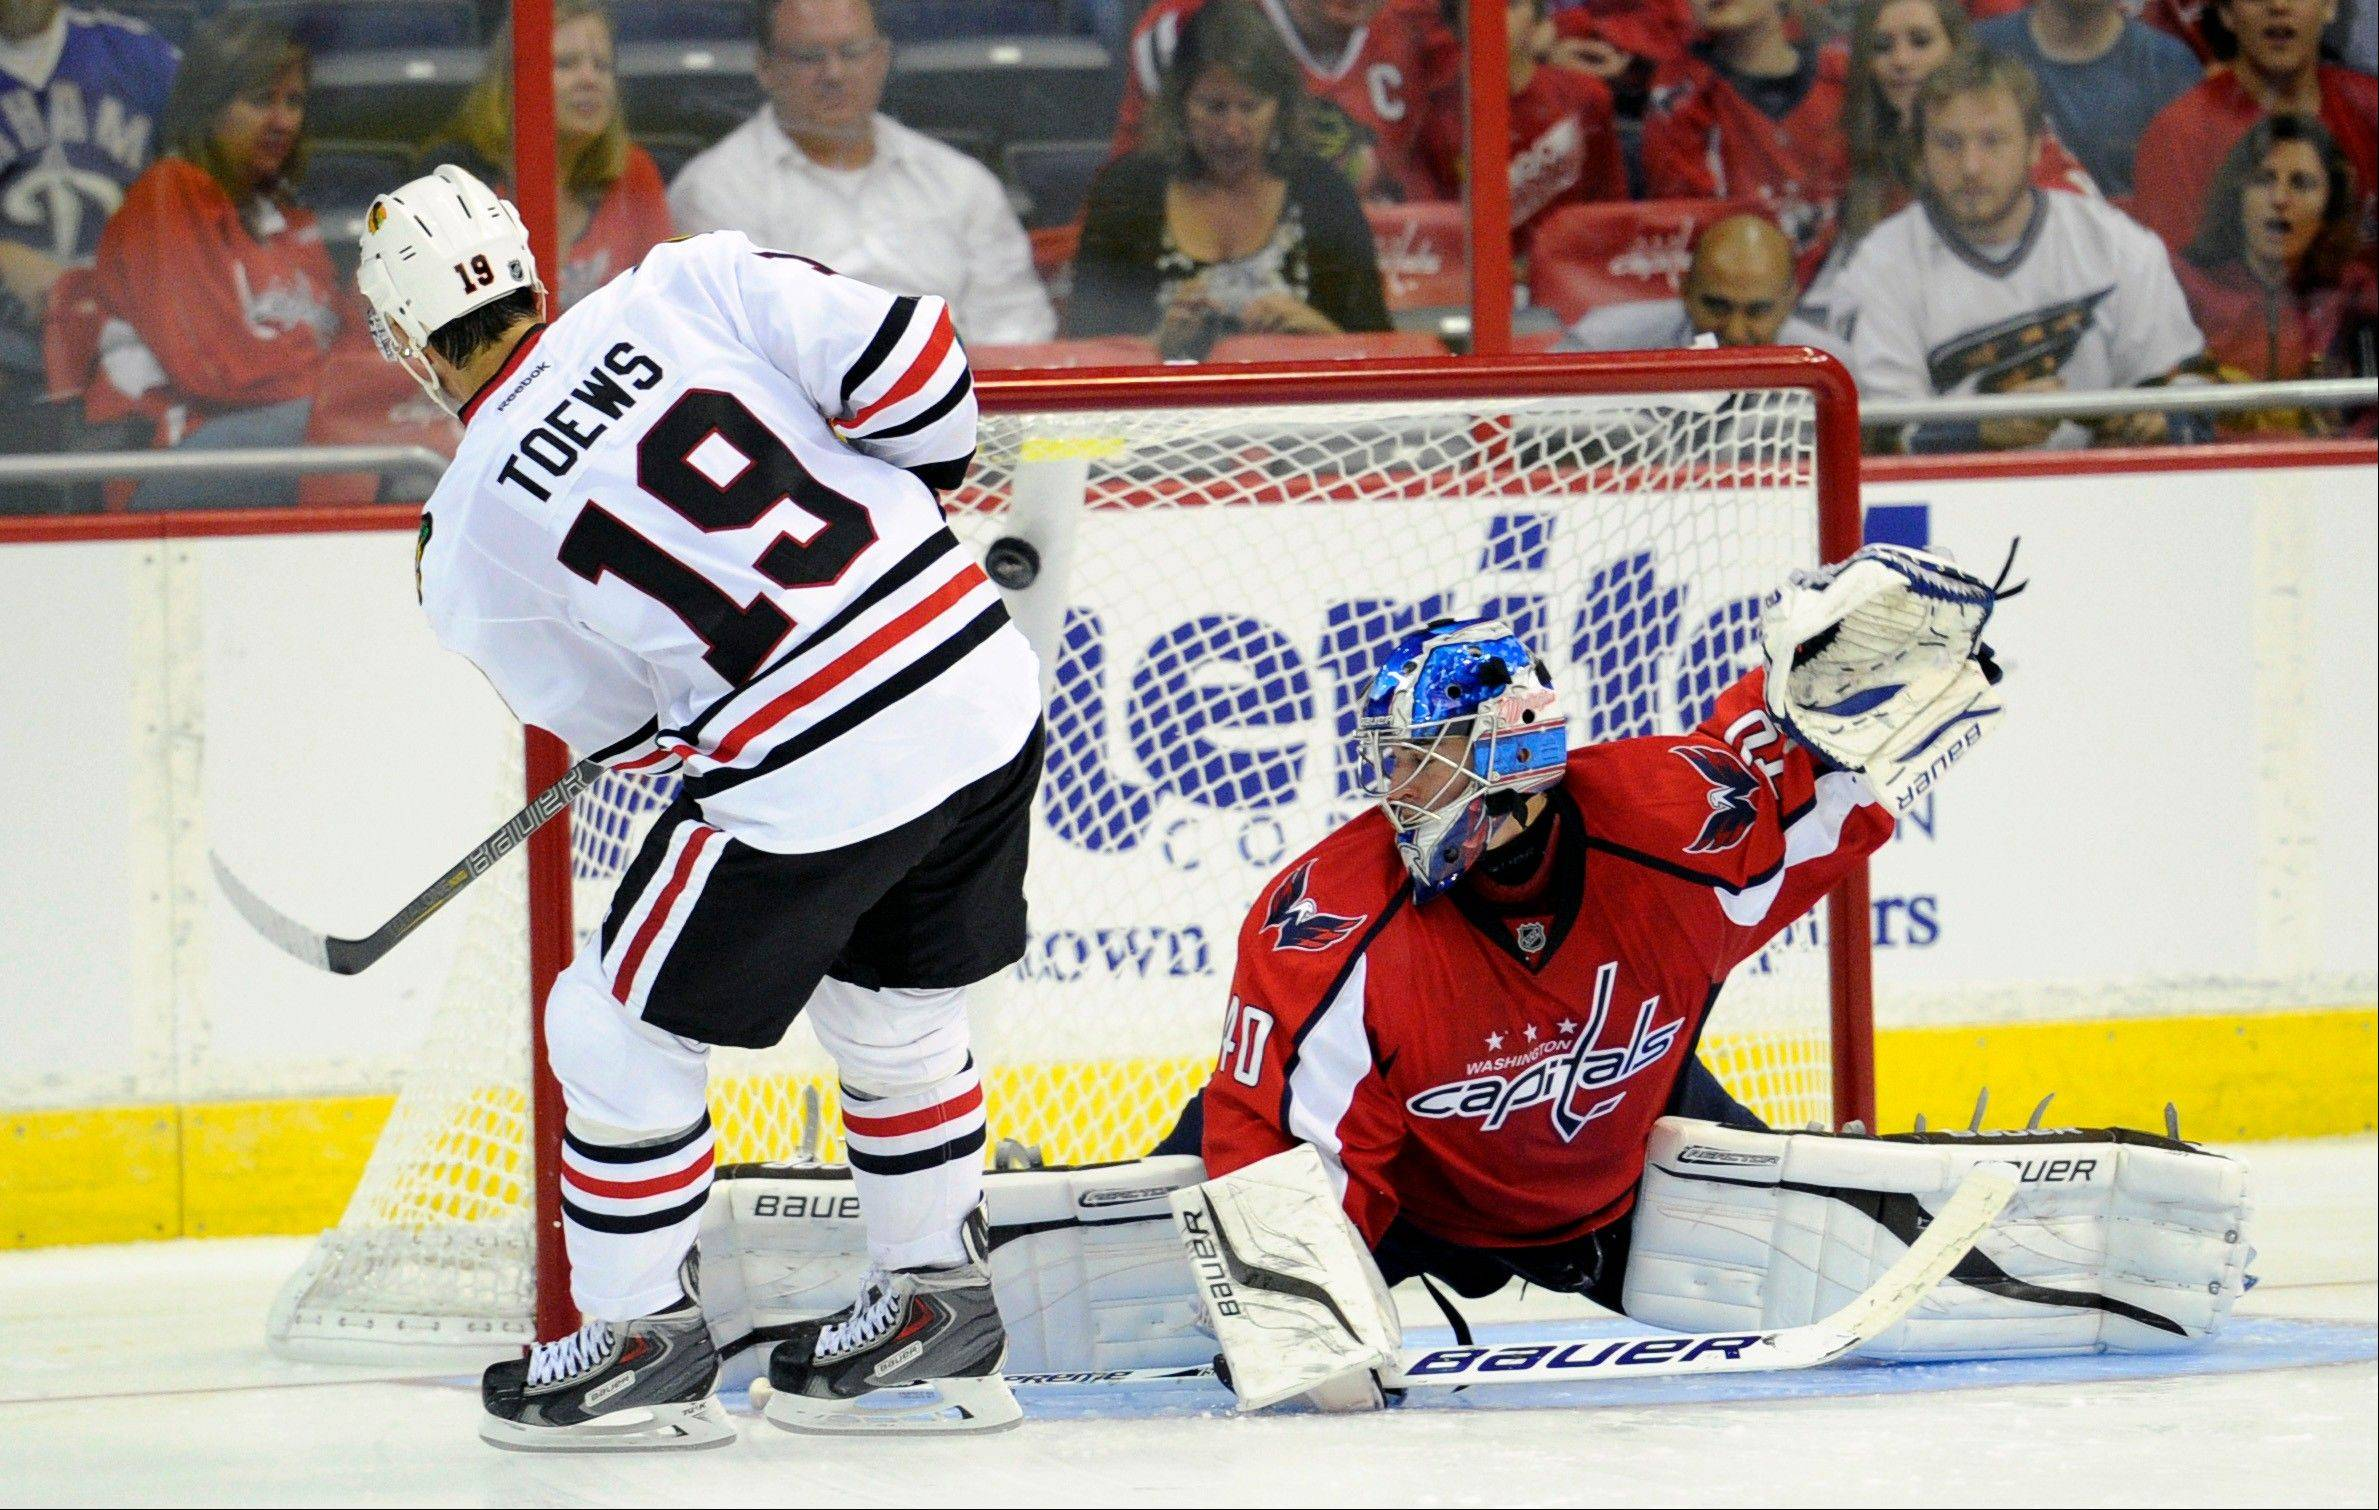 Jonathan Toews scores the only a goal during a shootout Friday that gave the Hawks a 5-4 preseason victory over the Capitals in Washington.